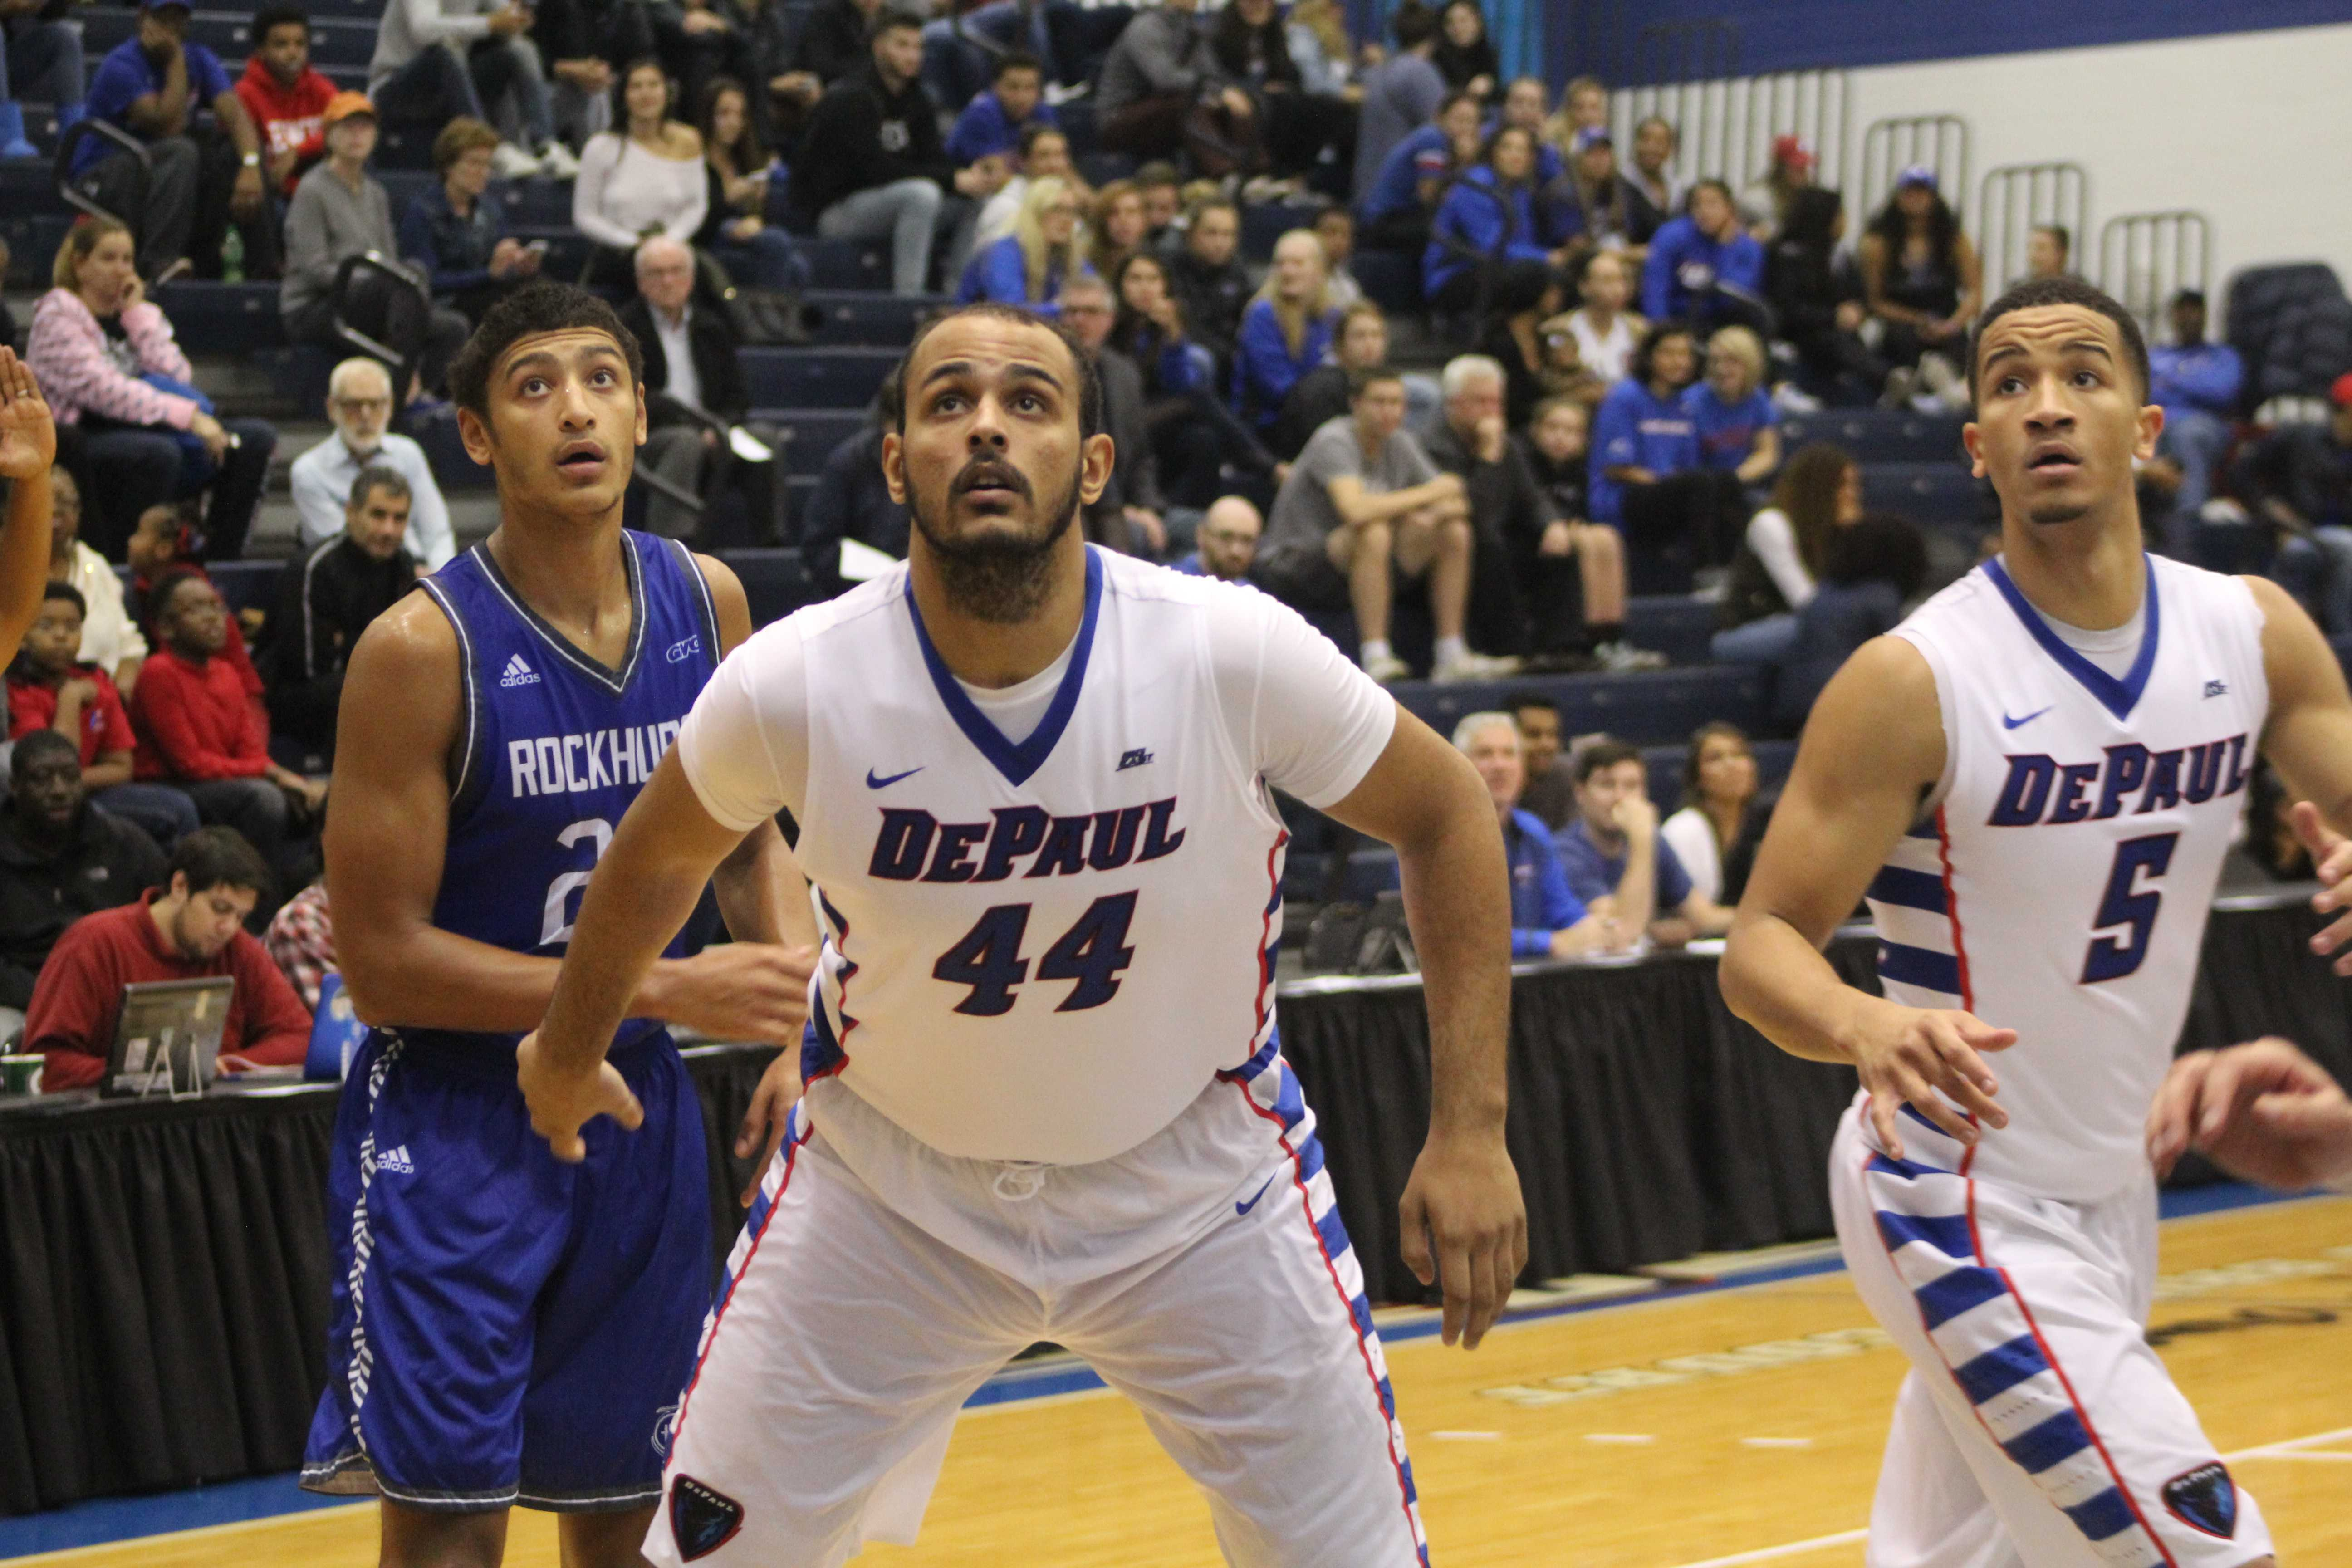 Levi Cook watches a shot go up in an exhibition game against Rockhurst (Caroline Stacy/The DePaulia)